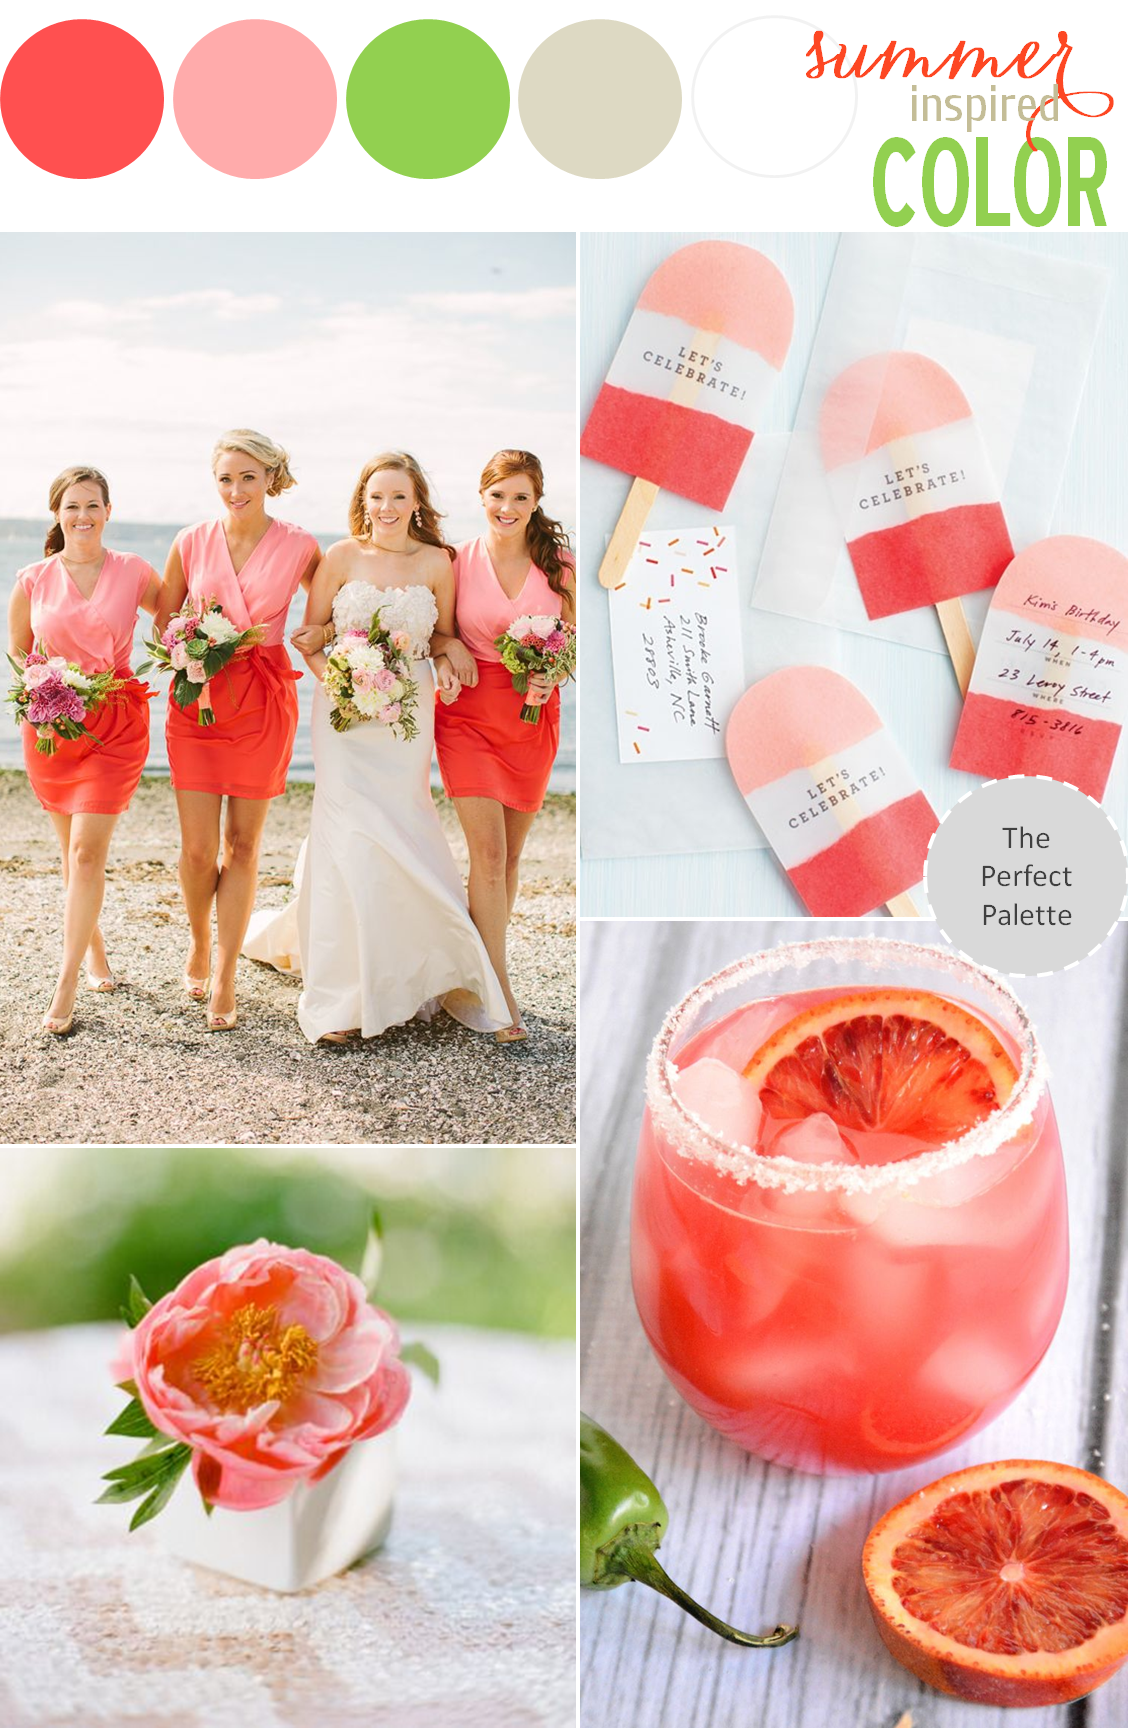 summer inspired color: coral two tone | coral and summer